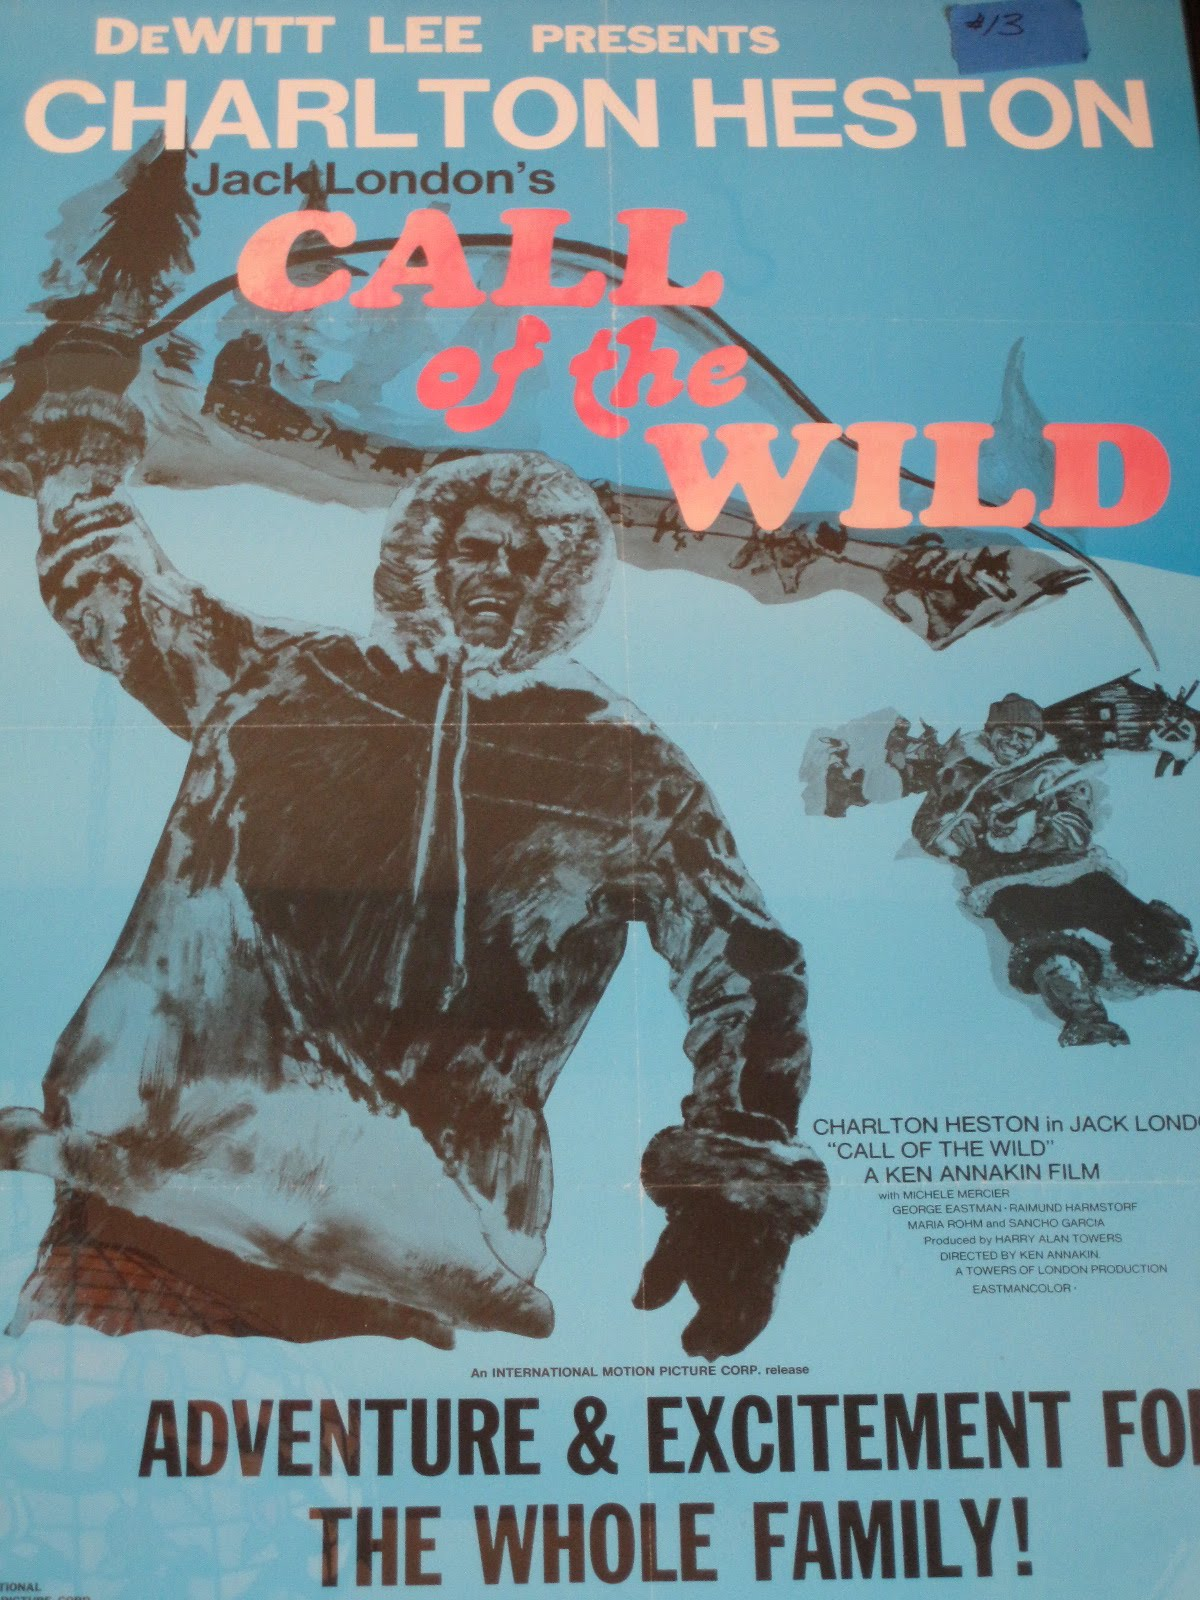 The Call of the Wild By Jack London!?